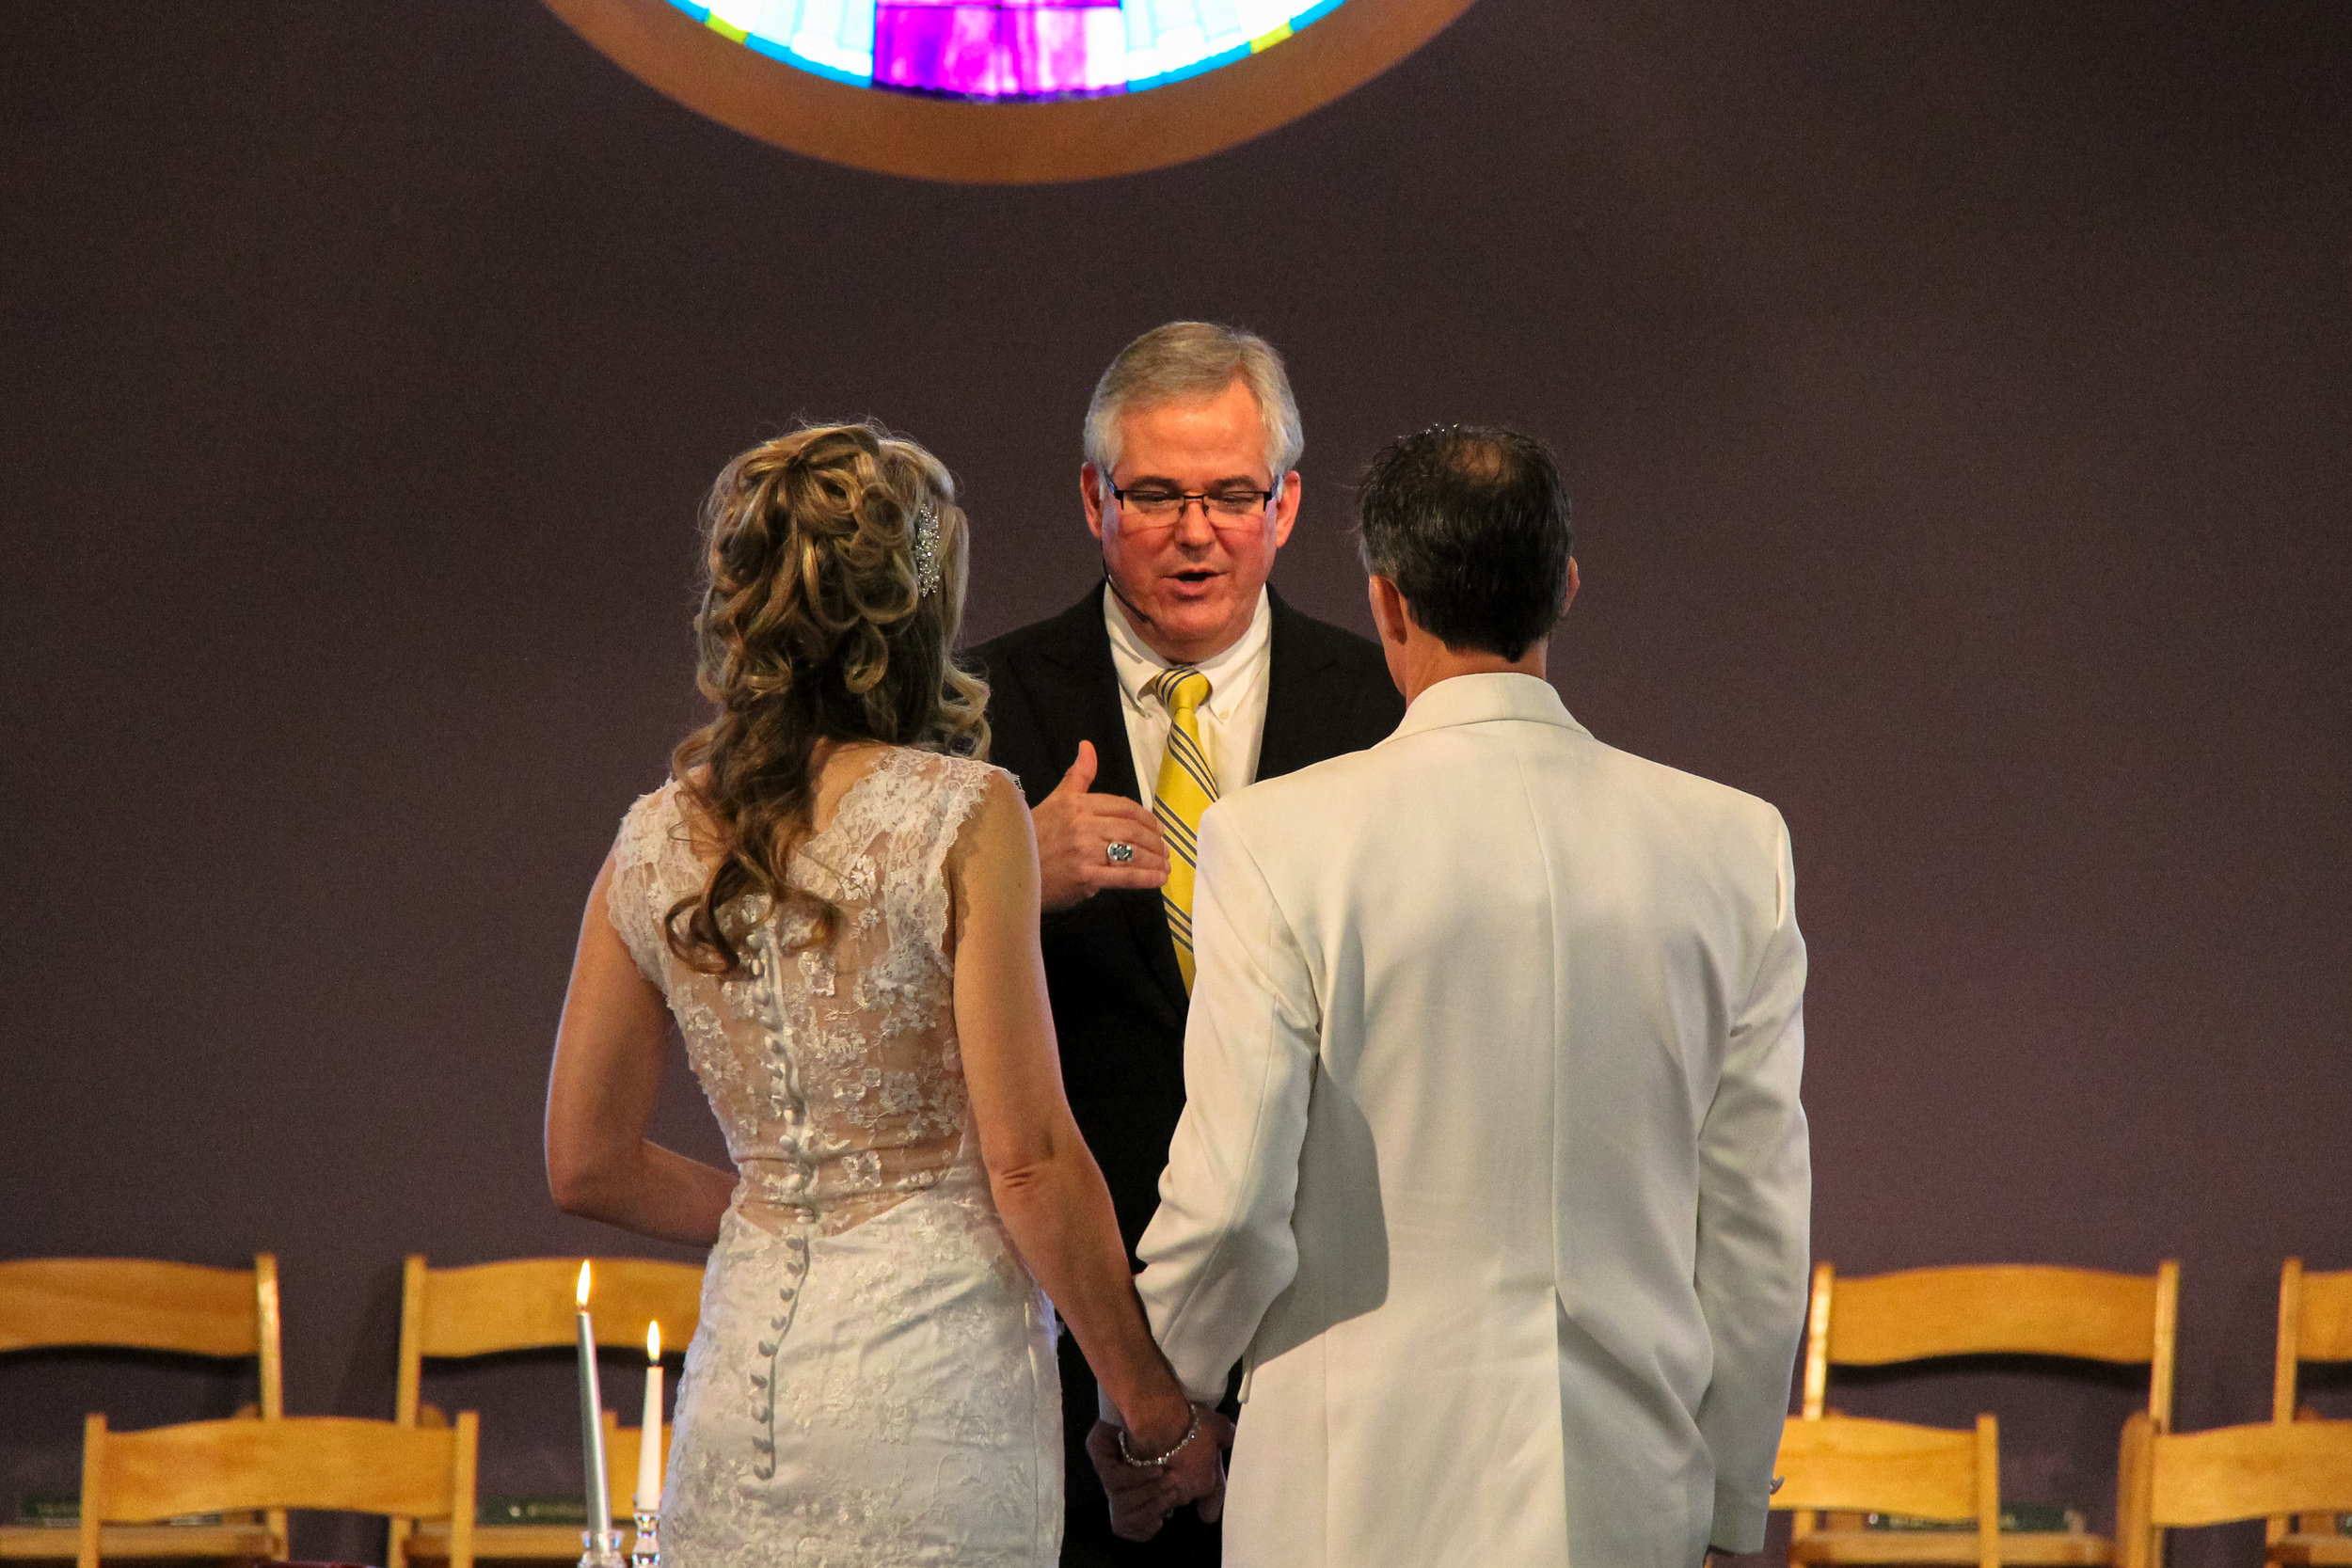 Perry McCale Wedding 3-7-15-77.jpg